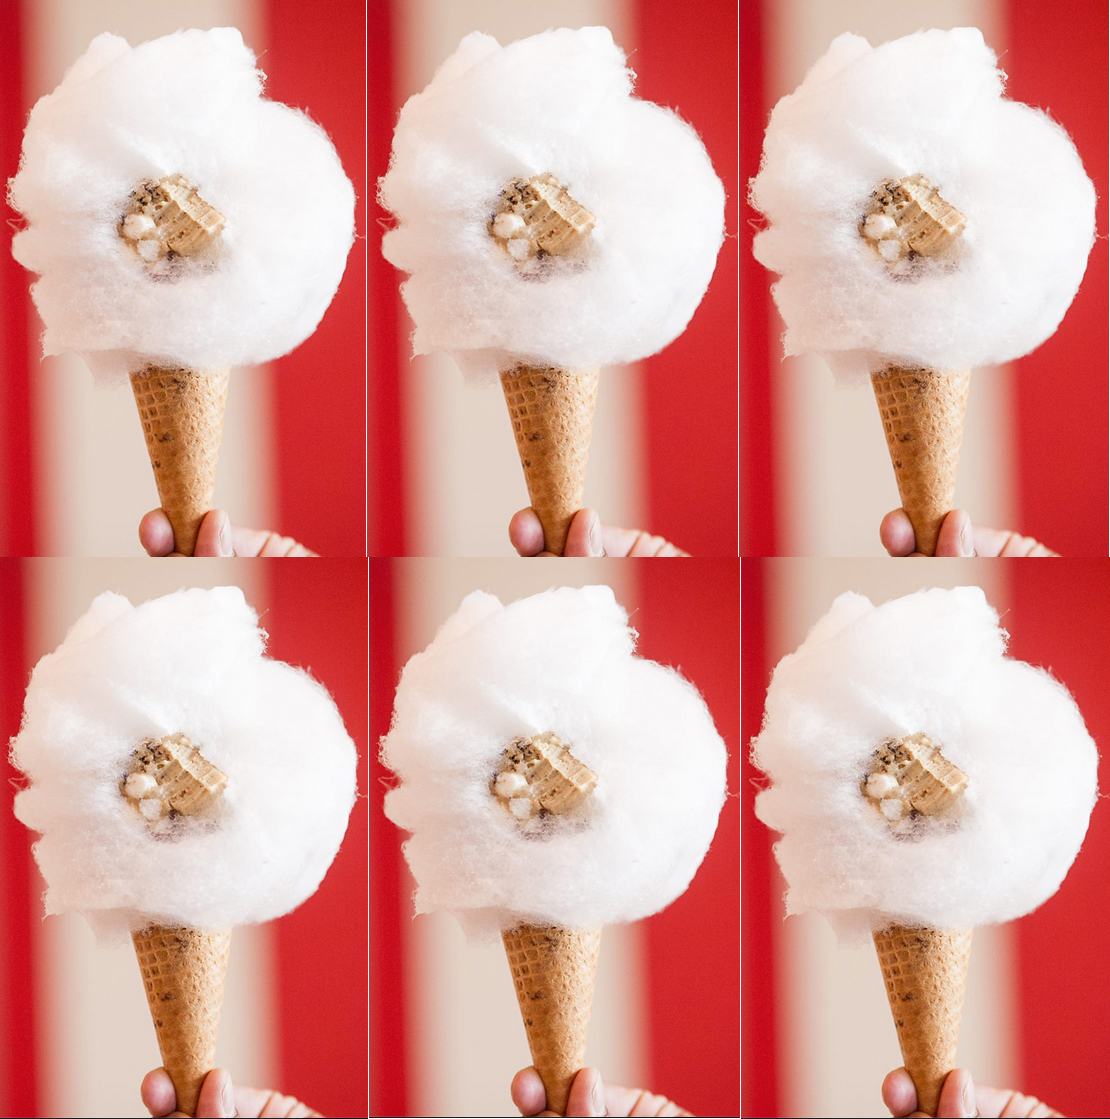 Brooklyn Ice Cream Shop Introduces Ingenious 'Cotton Candy Cone'